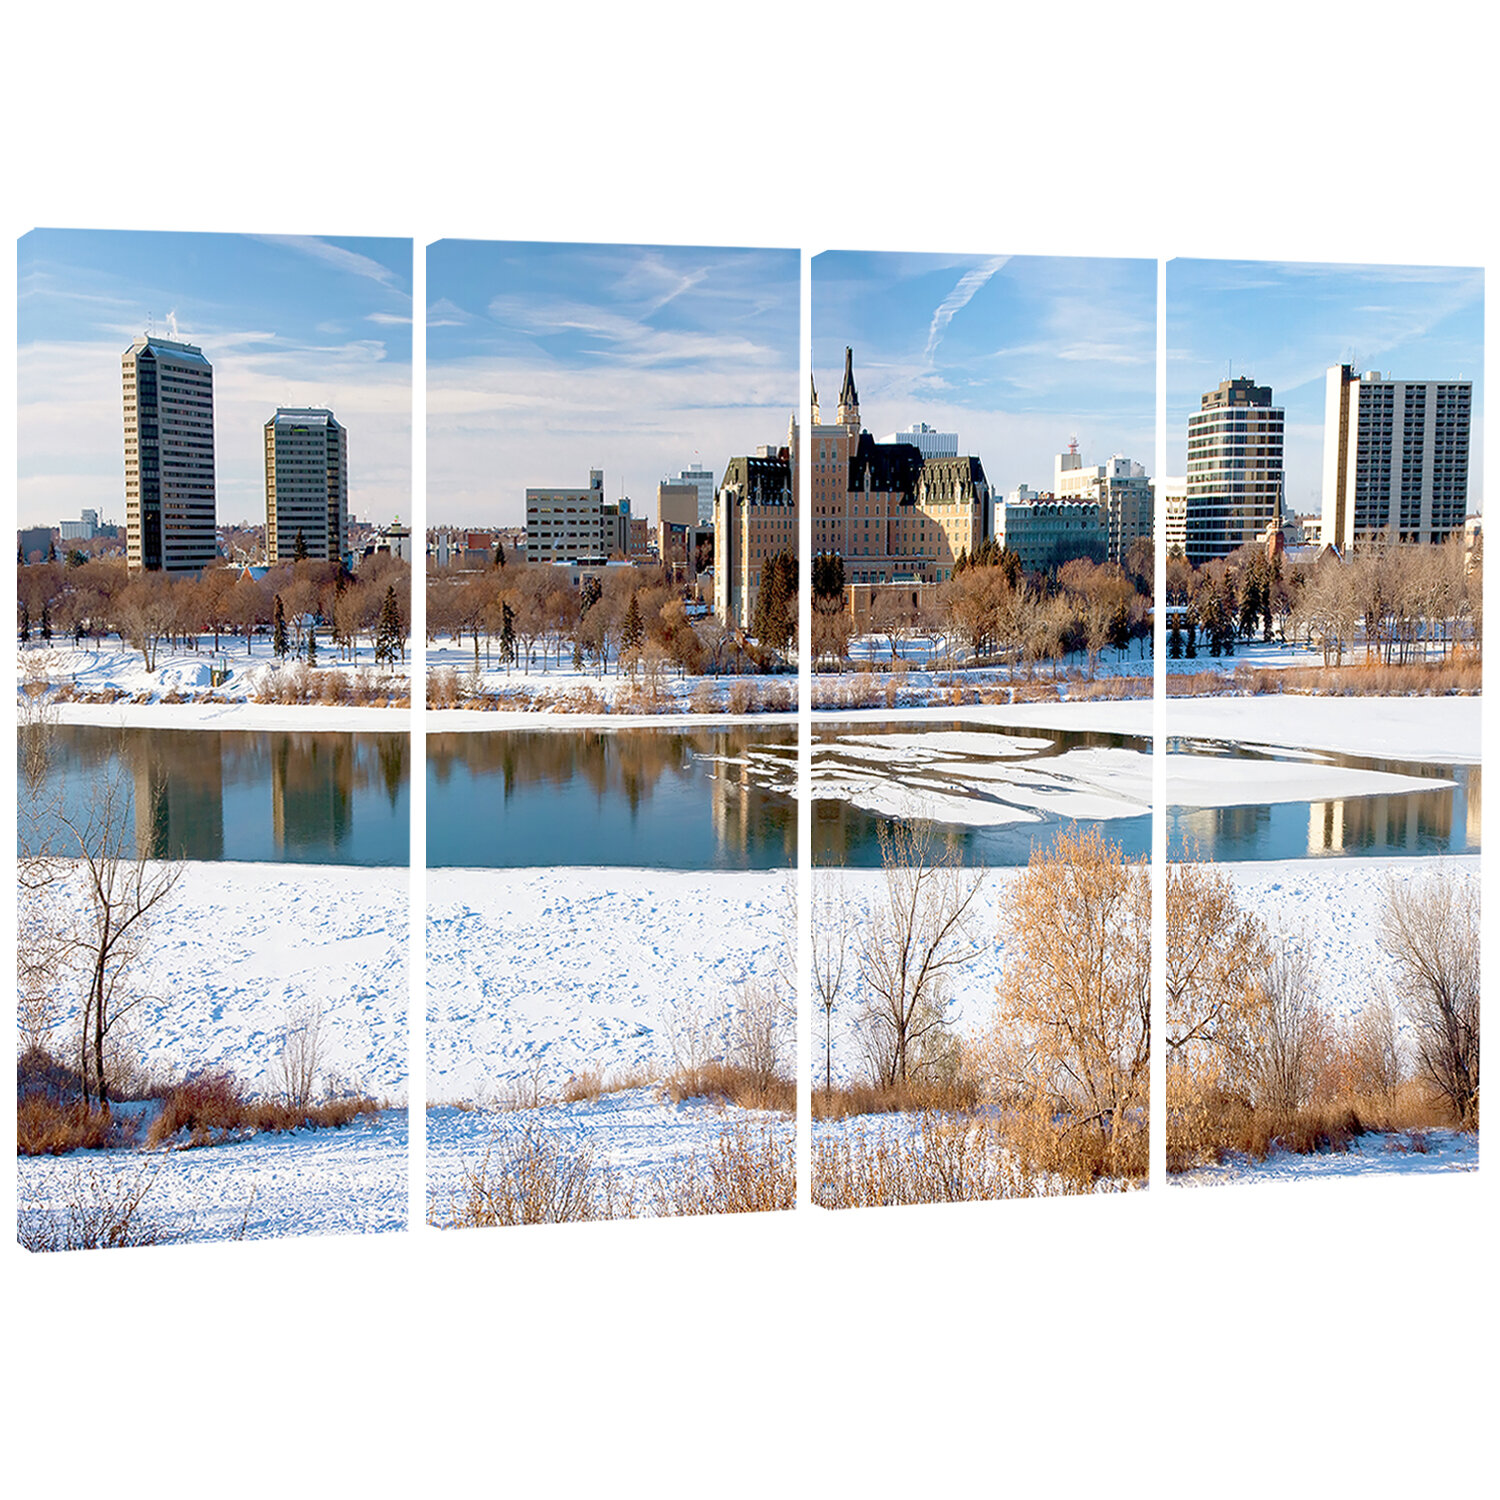 Designart City Of Saskatoon Winter Panoramic Landscape 4 Piece Photographic Print On Wrapped Canvas Set Wayfair